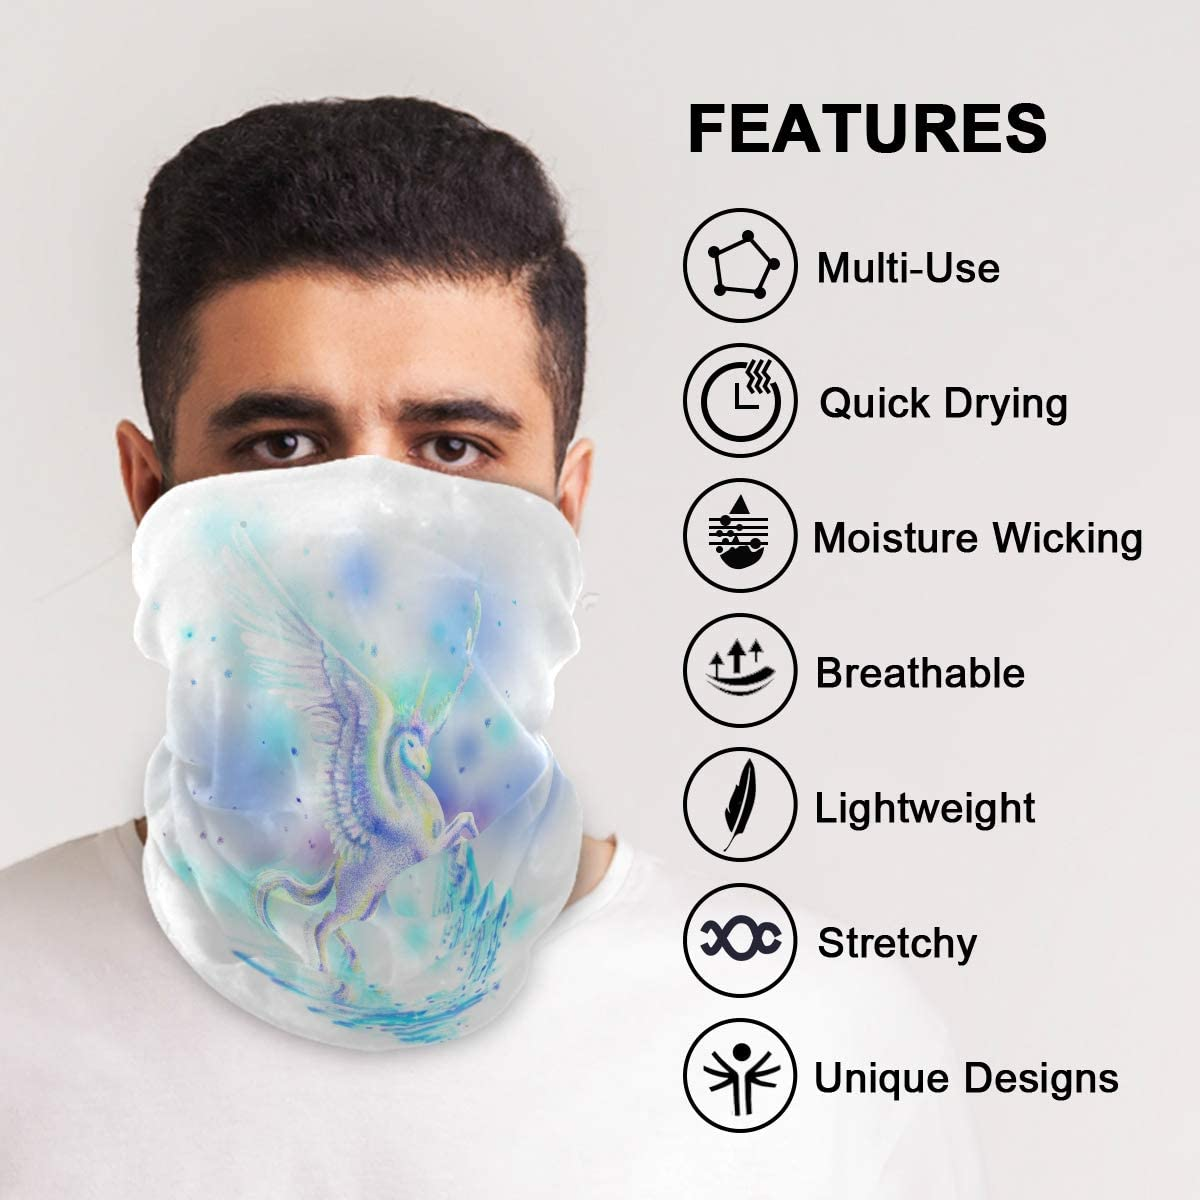 BEUSS White Fantasy Angel Unicorn Face Protection Mask Scarf Bandana Headwear Headband UV Dust Proof Windproof for Cycling Hiking Outdoor for Boys Girls Adult